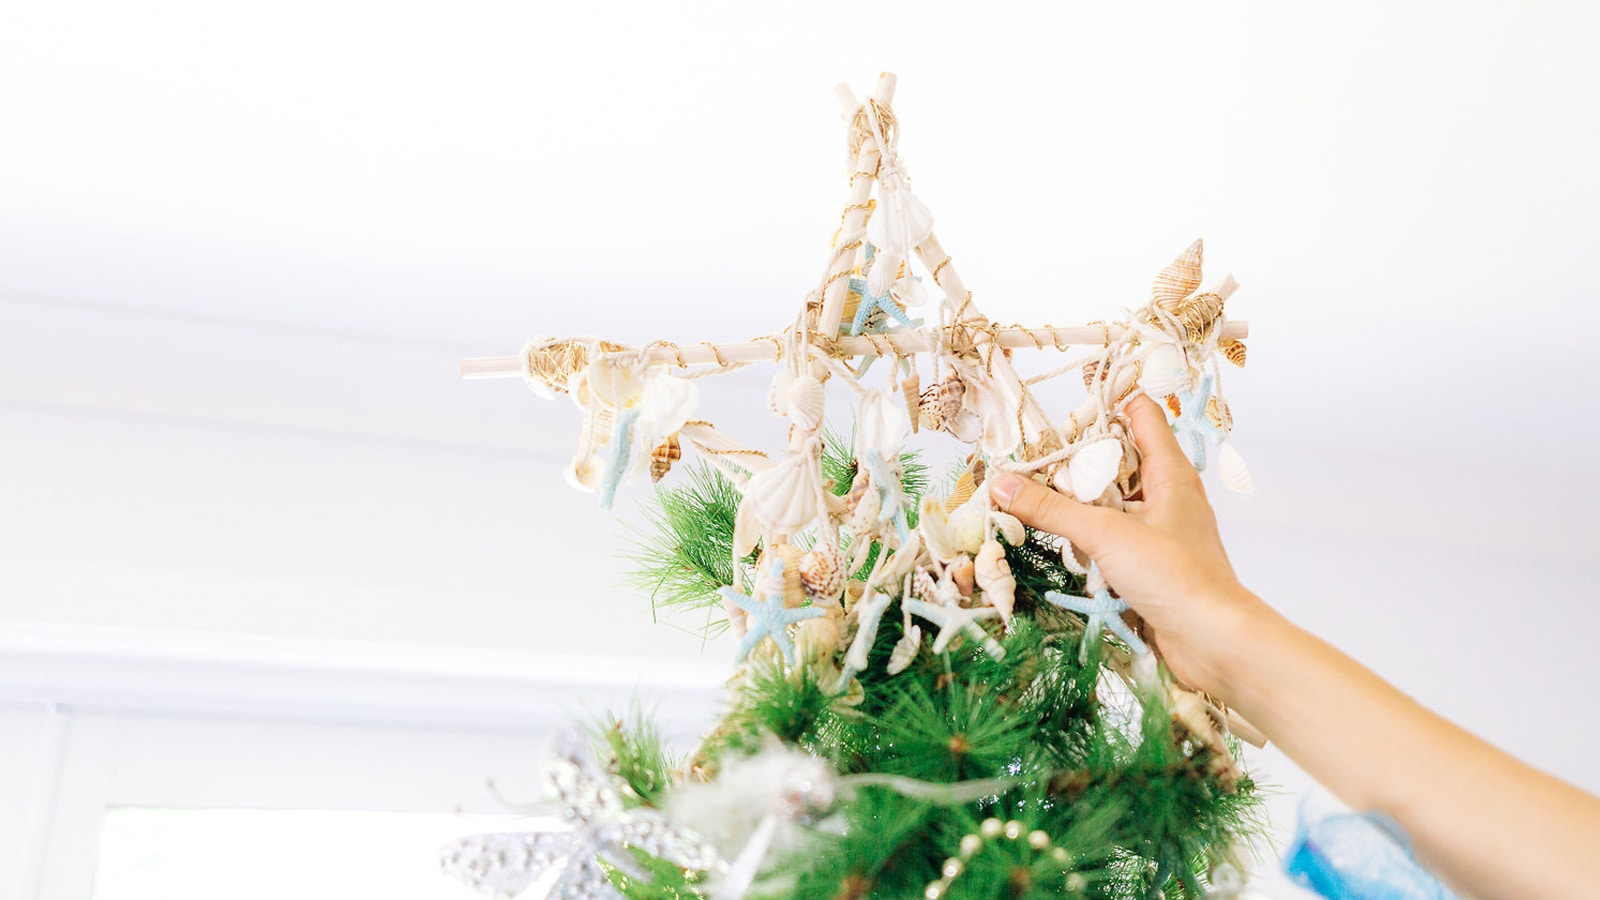 DIY: Moana Ocean-Inspired Tree Topper